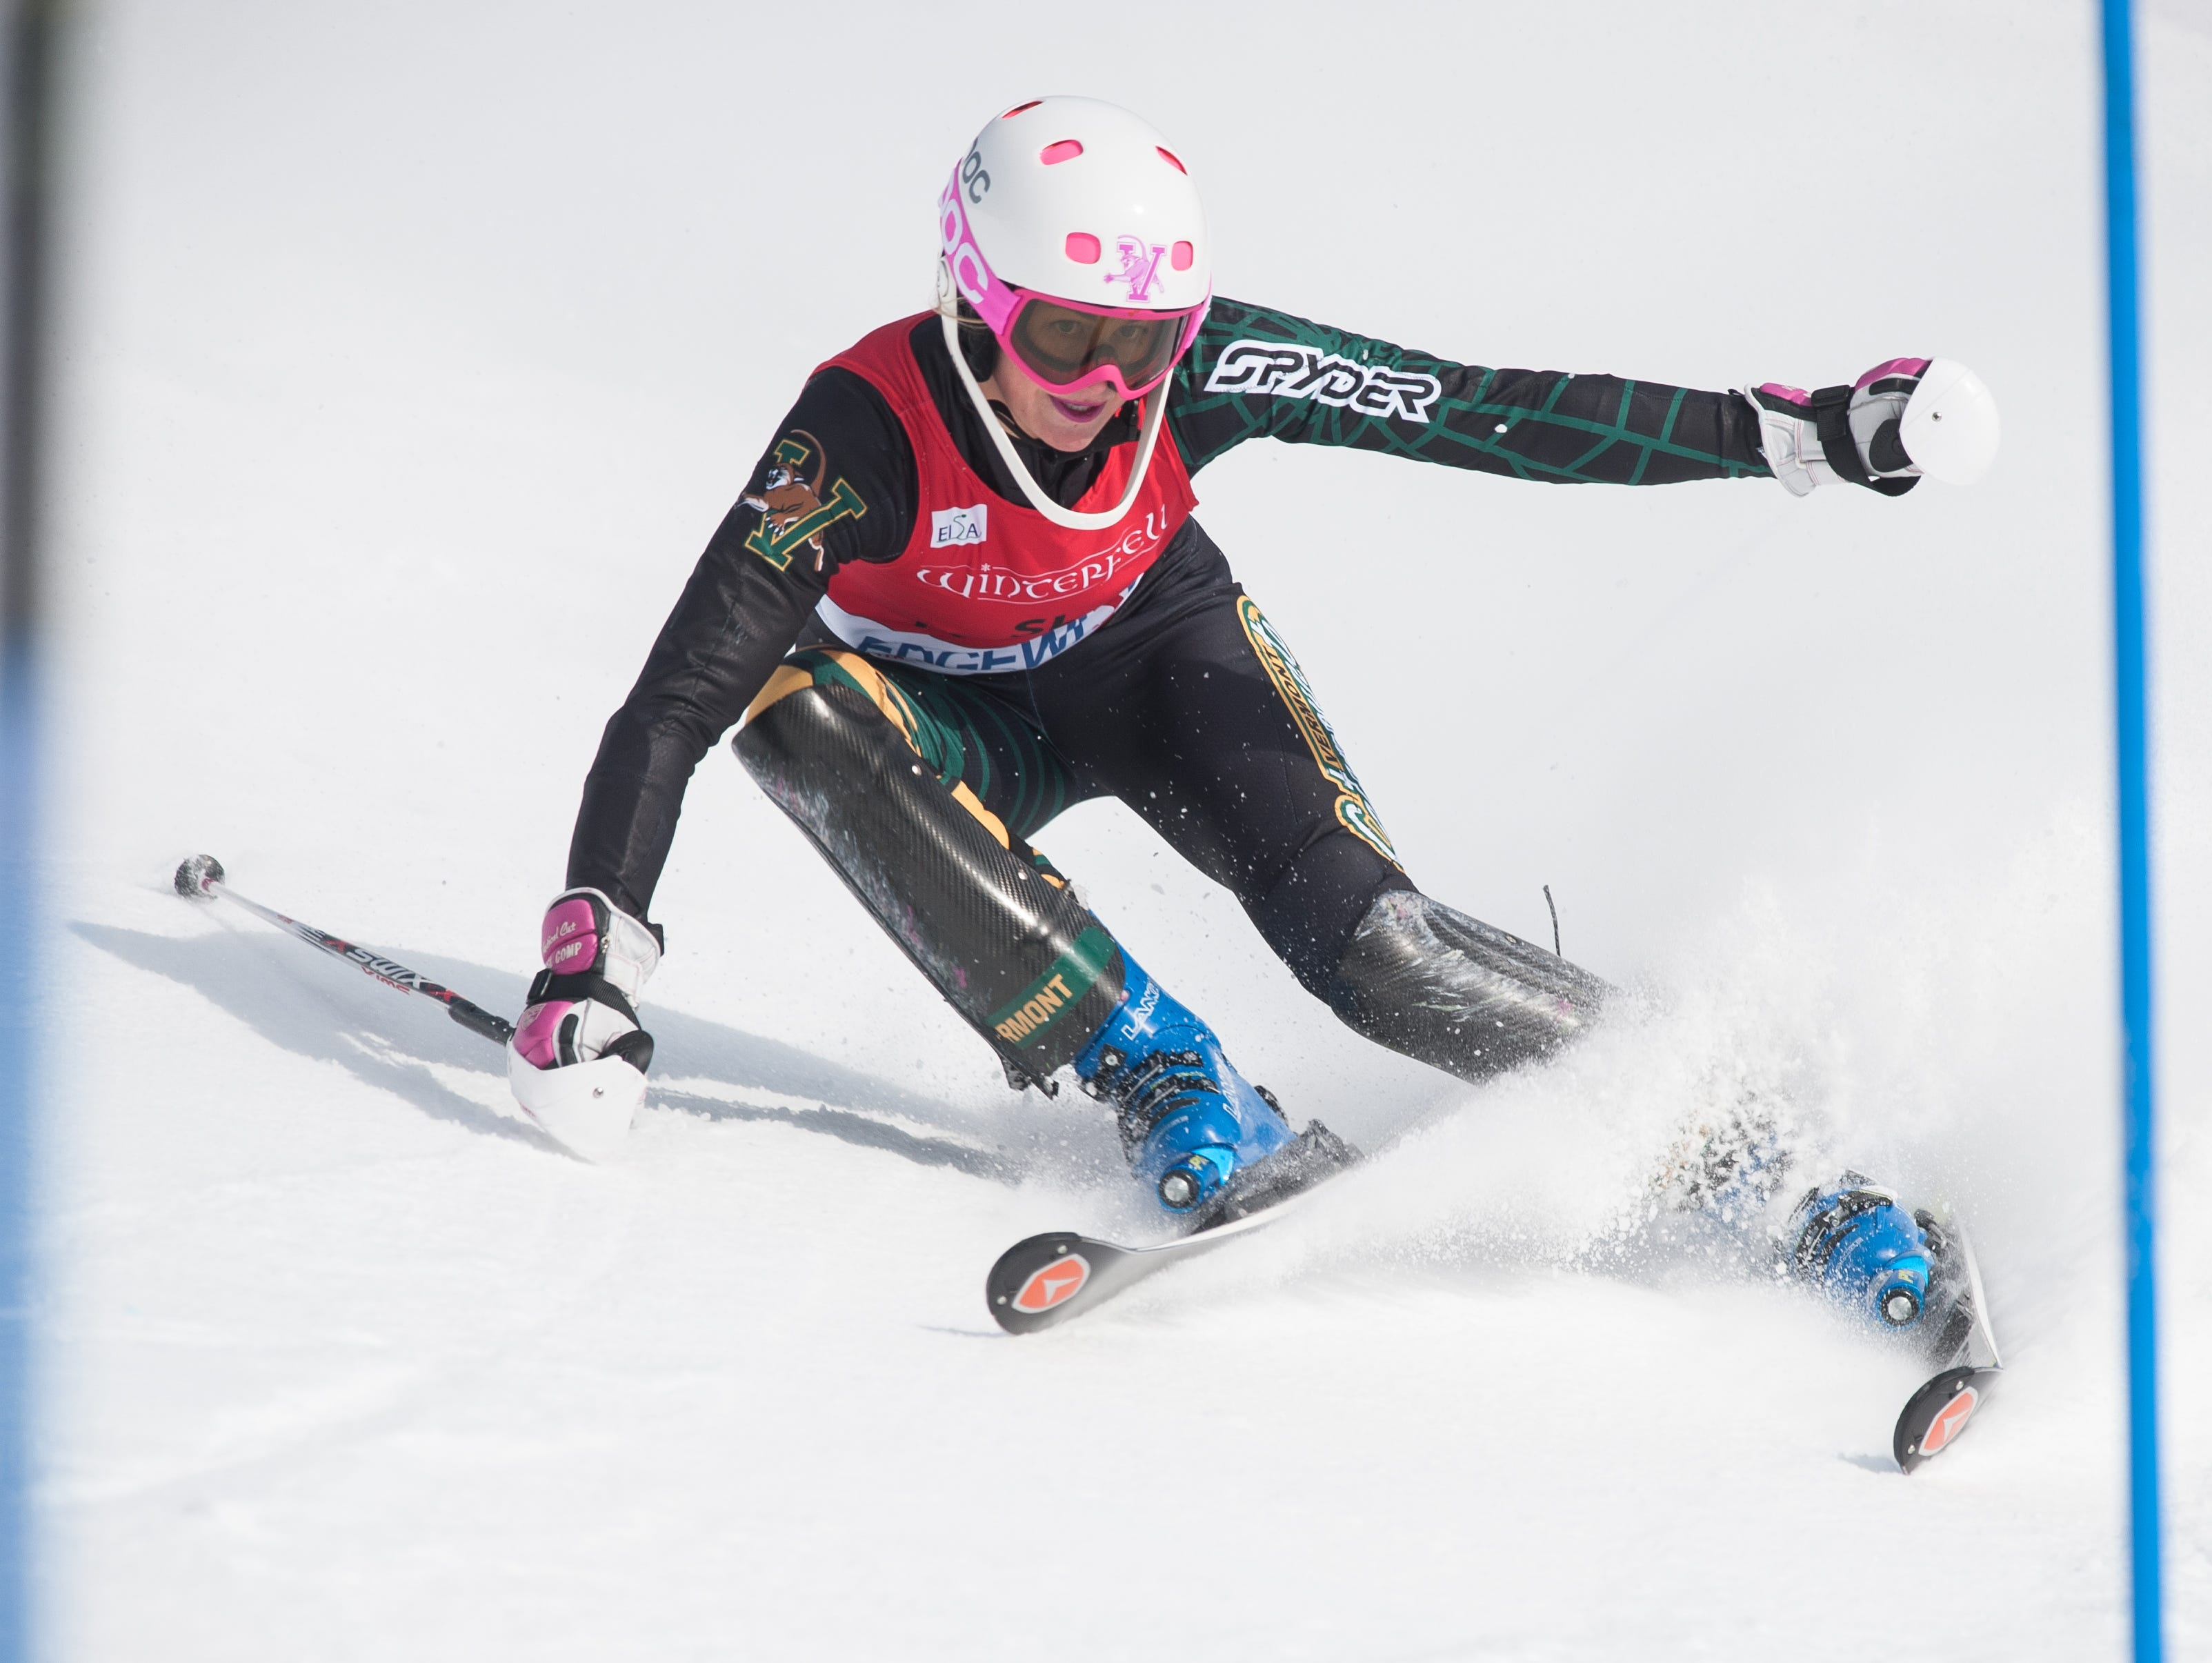 Vermont's Kristina Riis-Johannessen competes in the slalom race during the University of Vermont ski carnival at Stowe Mountain Resort on Jan. 24.